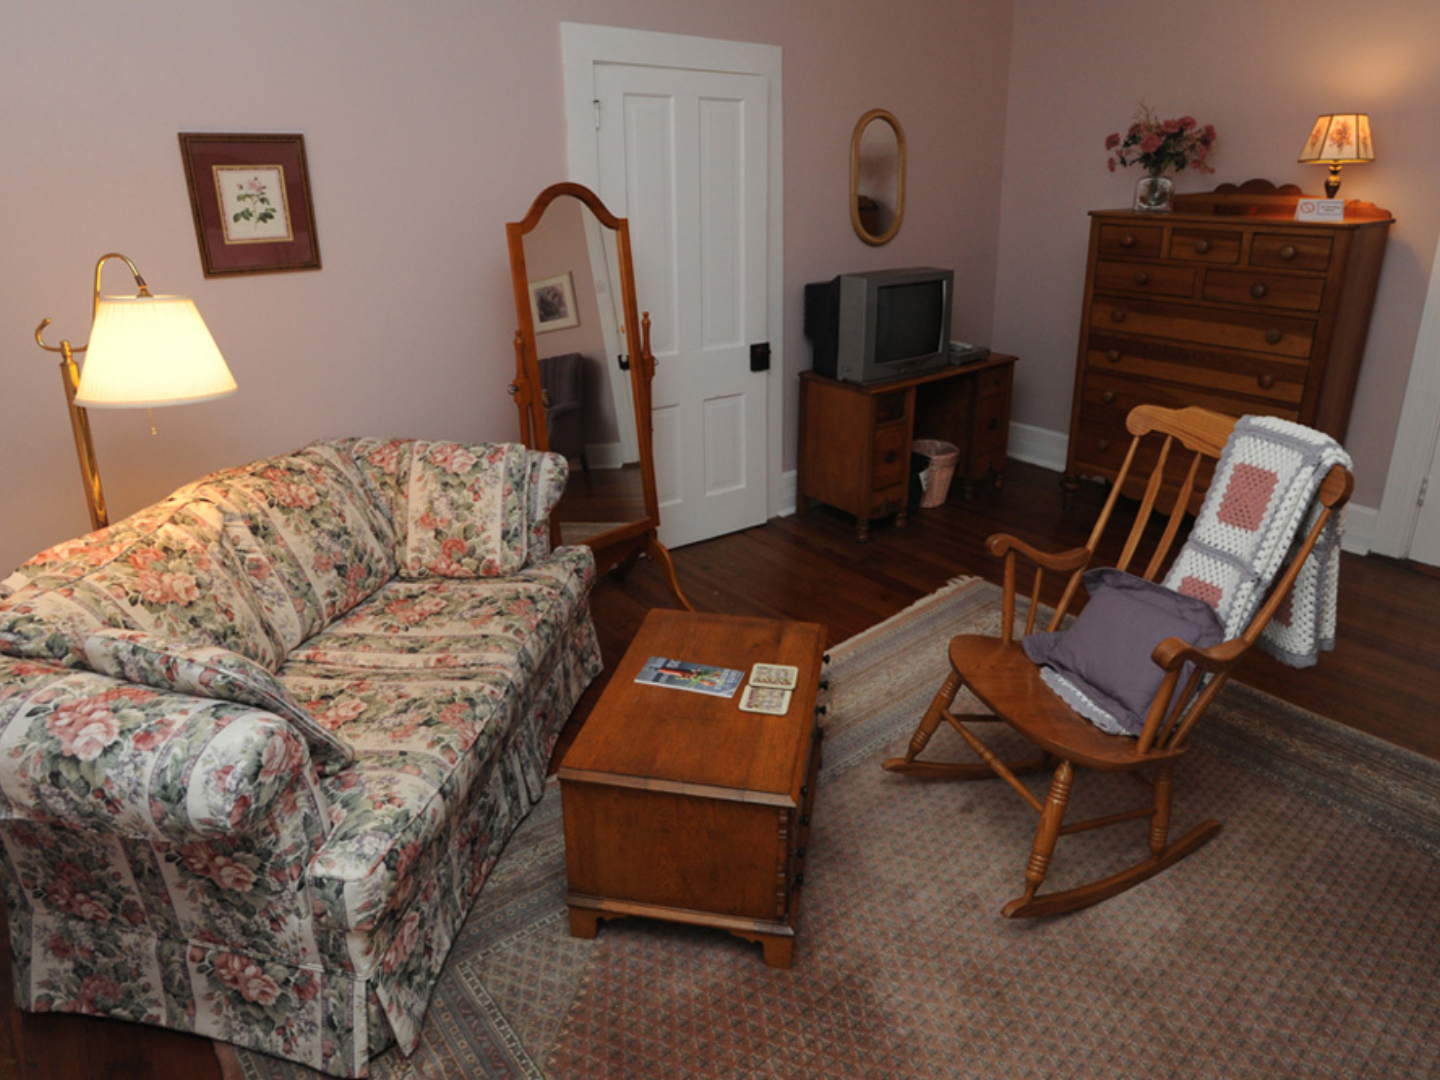 A living room at Dry Ridge Inn Bed and Breakfast.